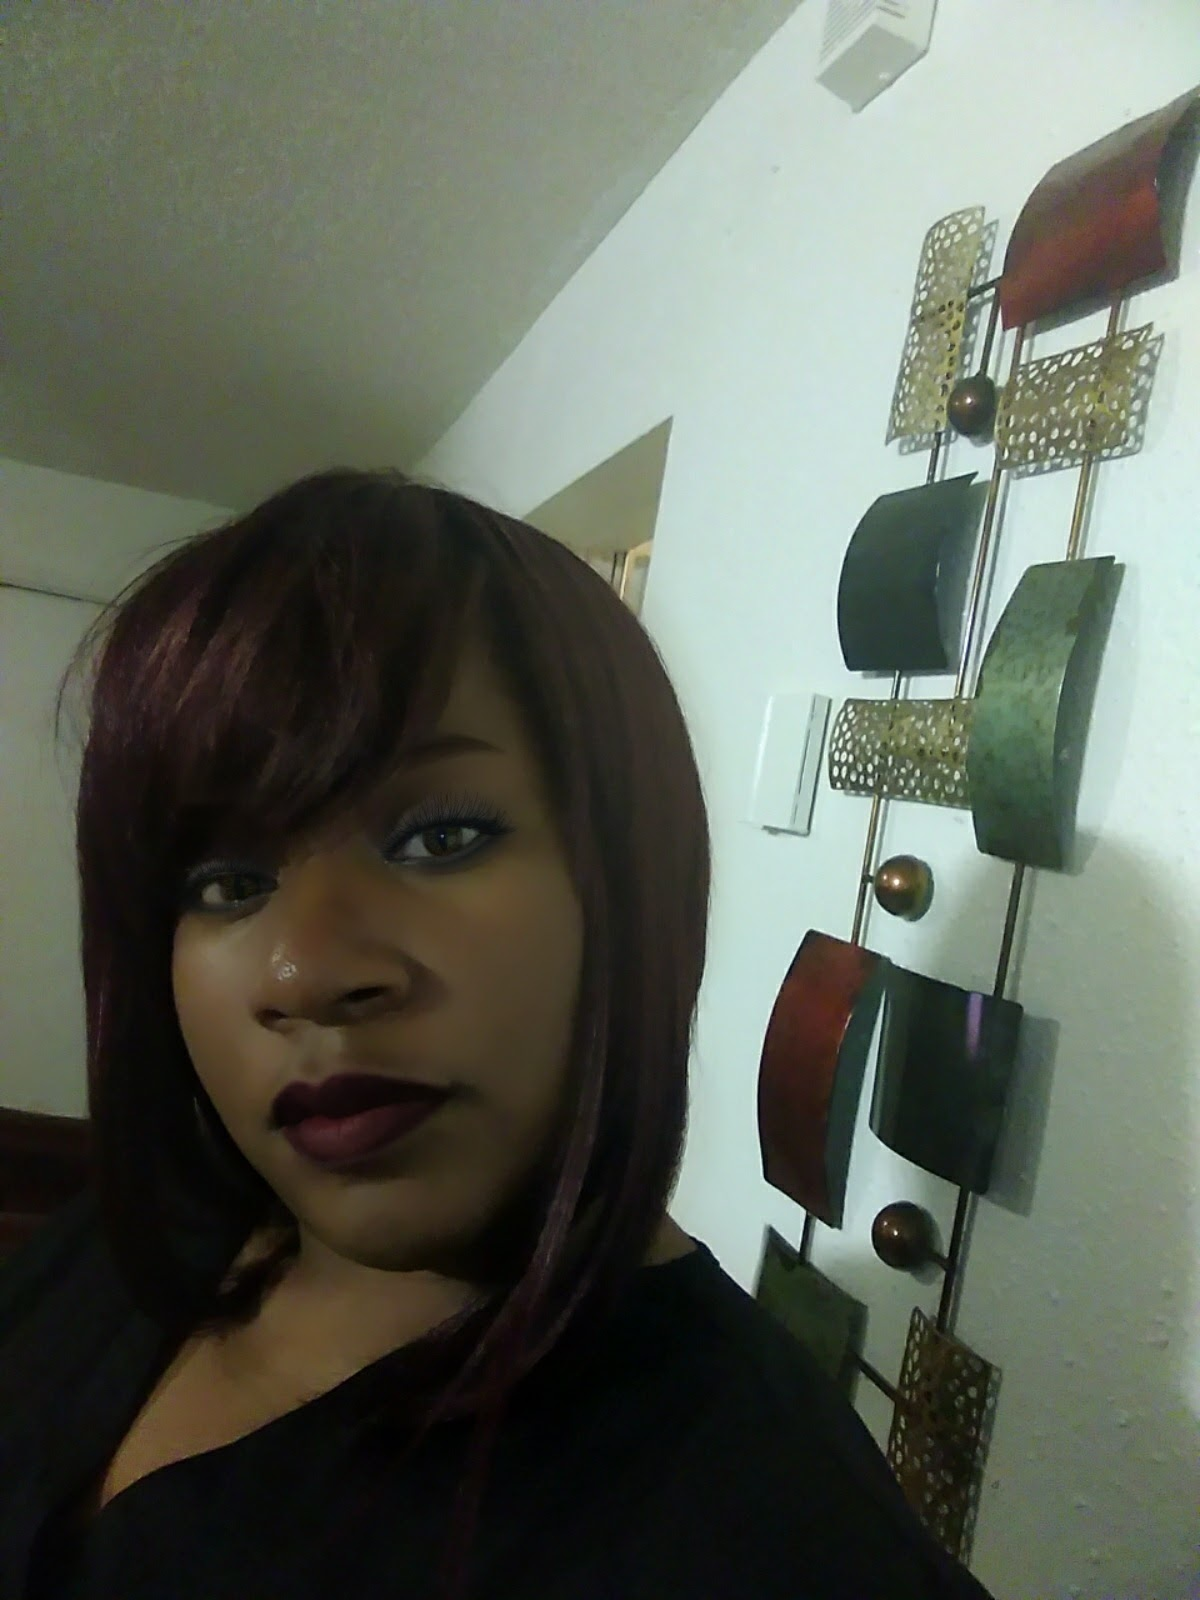 38-year-old, Do You Care? From: Jacksonville, Florida, United States